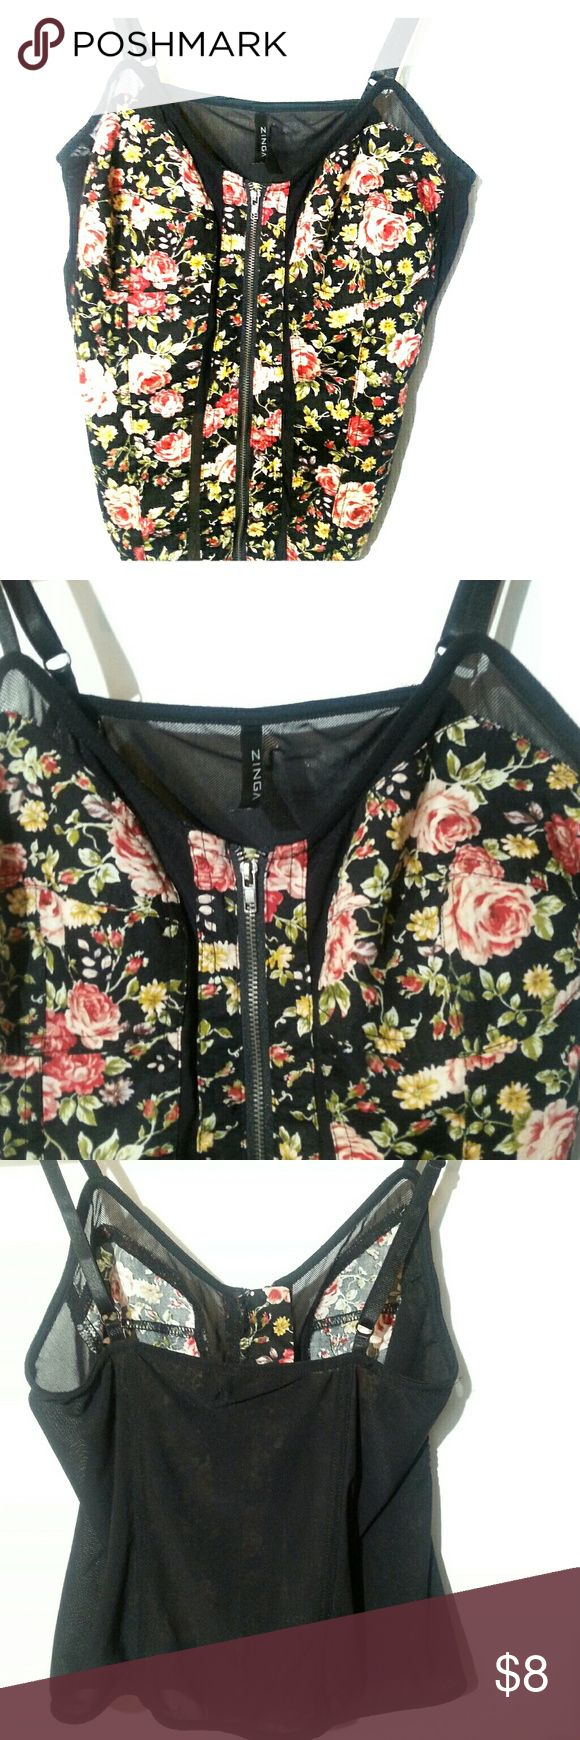 Women's floral cami size L Women's floral cami size Large, never used. Zinga Tops Camisoles